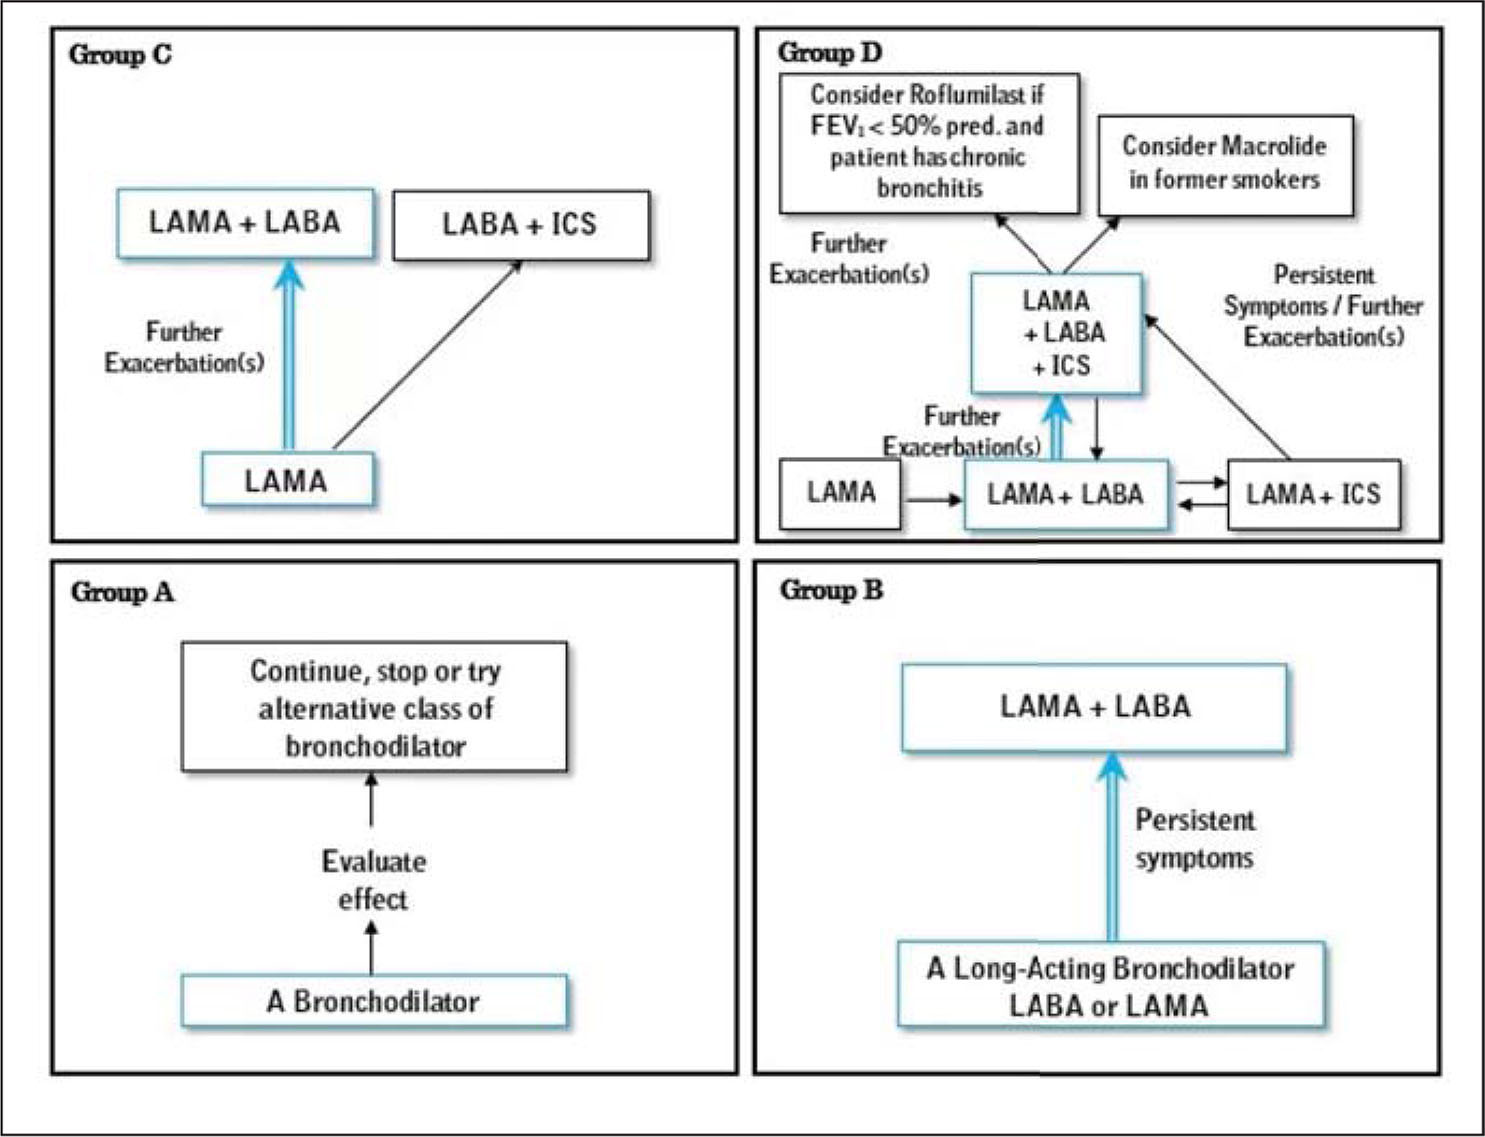 Treatment approaches for chronic obstructive pulmonary disease based on severity assessment.Note. LAMA = long-acting muscarinic antagonists; LABA = long-acting beta2-agonists; ICS = inhaled corticosteroid; FEV = forced expiratory volume.Reprinted with permission from Global Initiative for Chronic Obstructive Lung Disease. (2017). Pocket guide to COPD diagnosis, management, and prevention. Retrieved from https://goldcopd.org/wp-content/uploads/2016/12/wms-GOLD-2017-Pocket-Guide.pdf